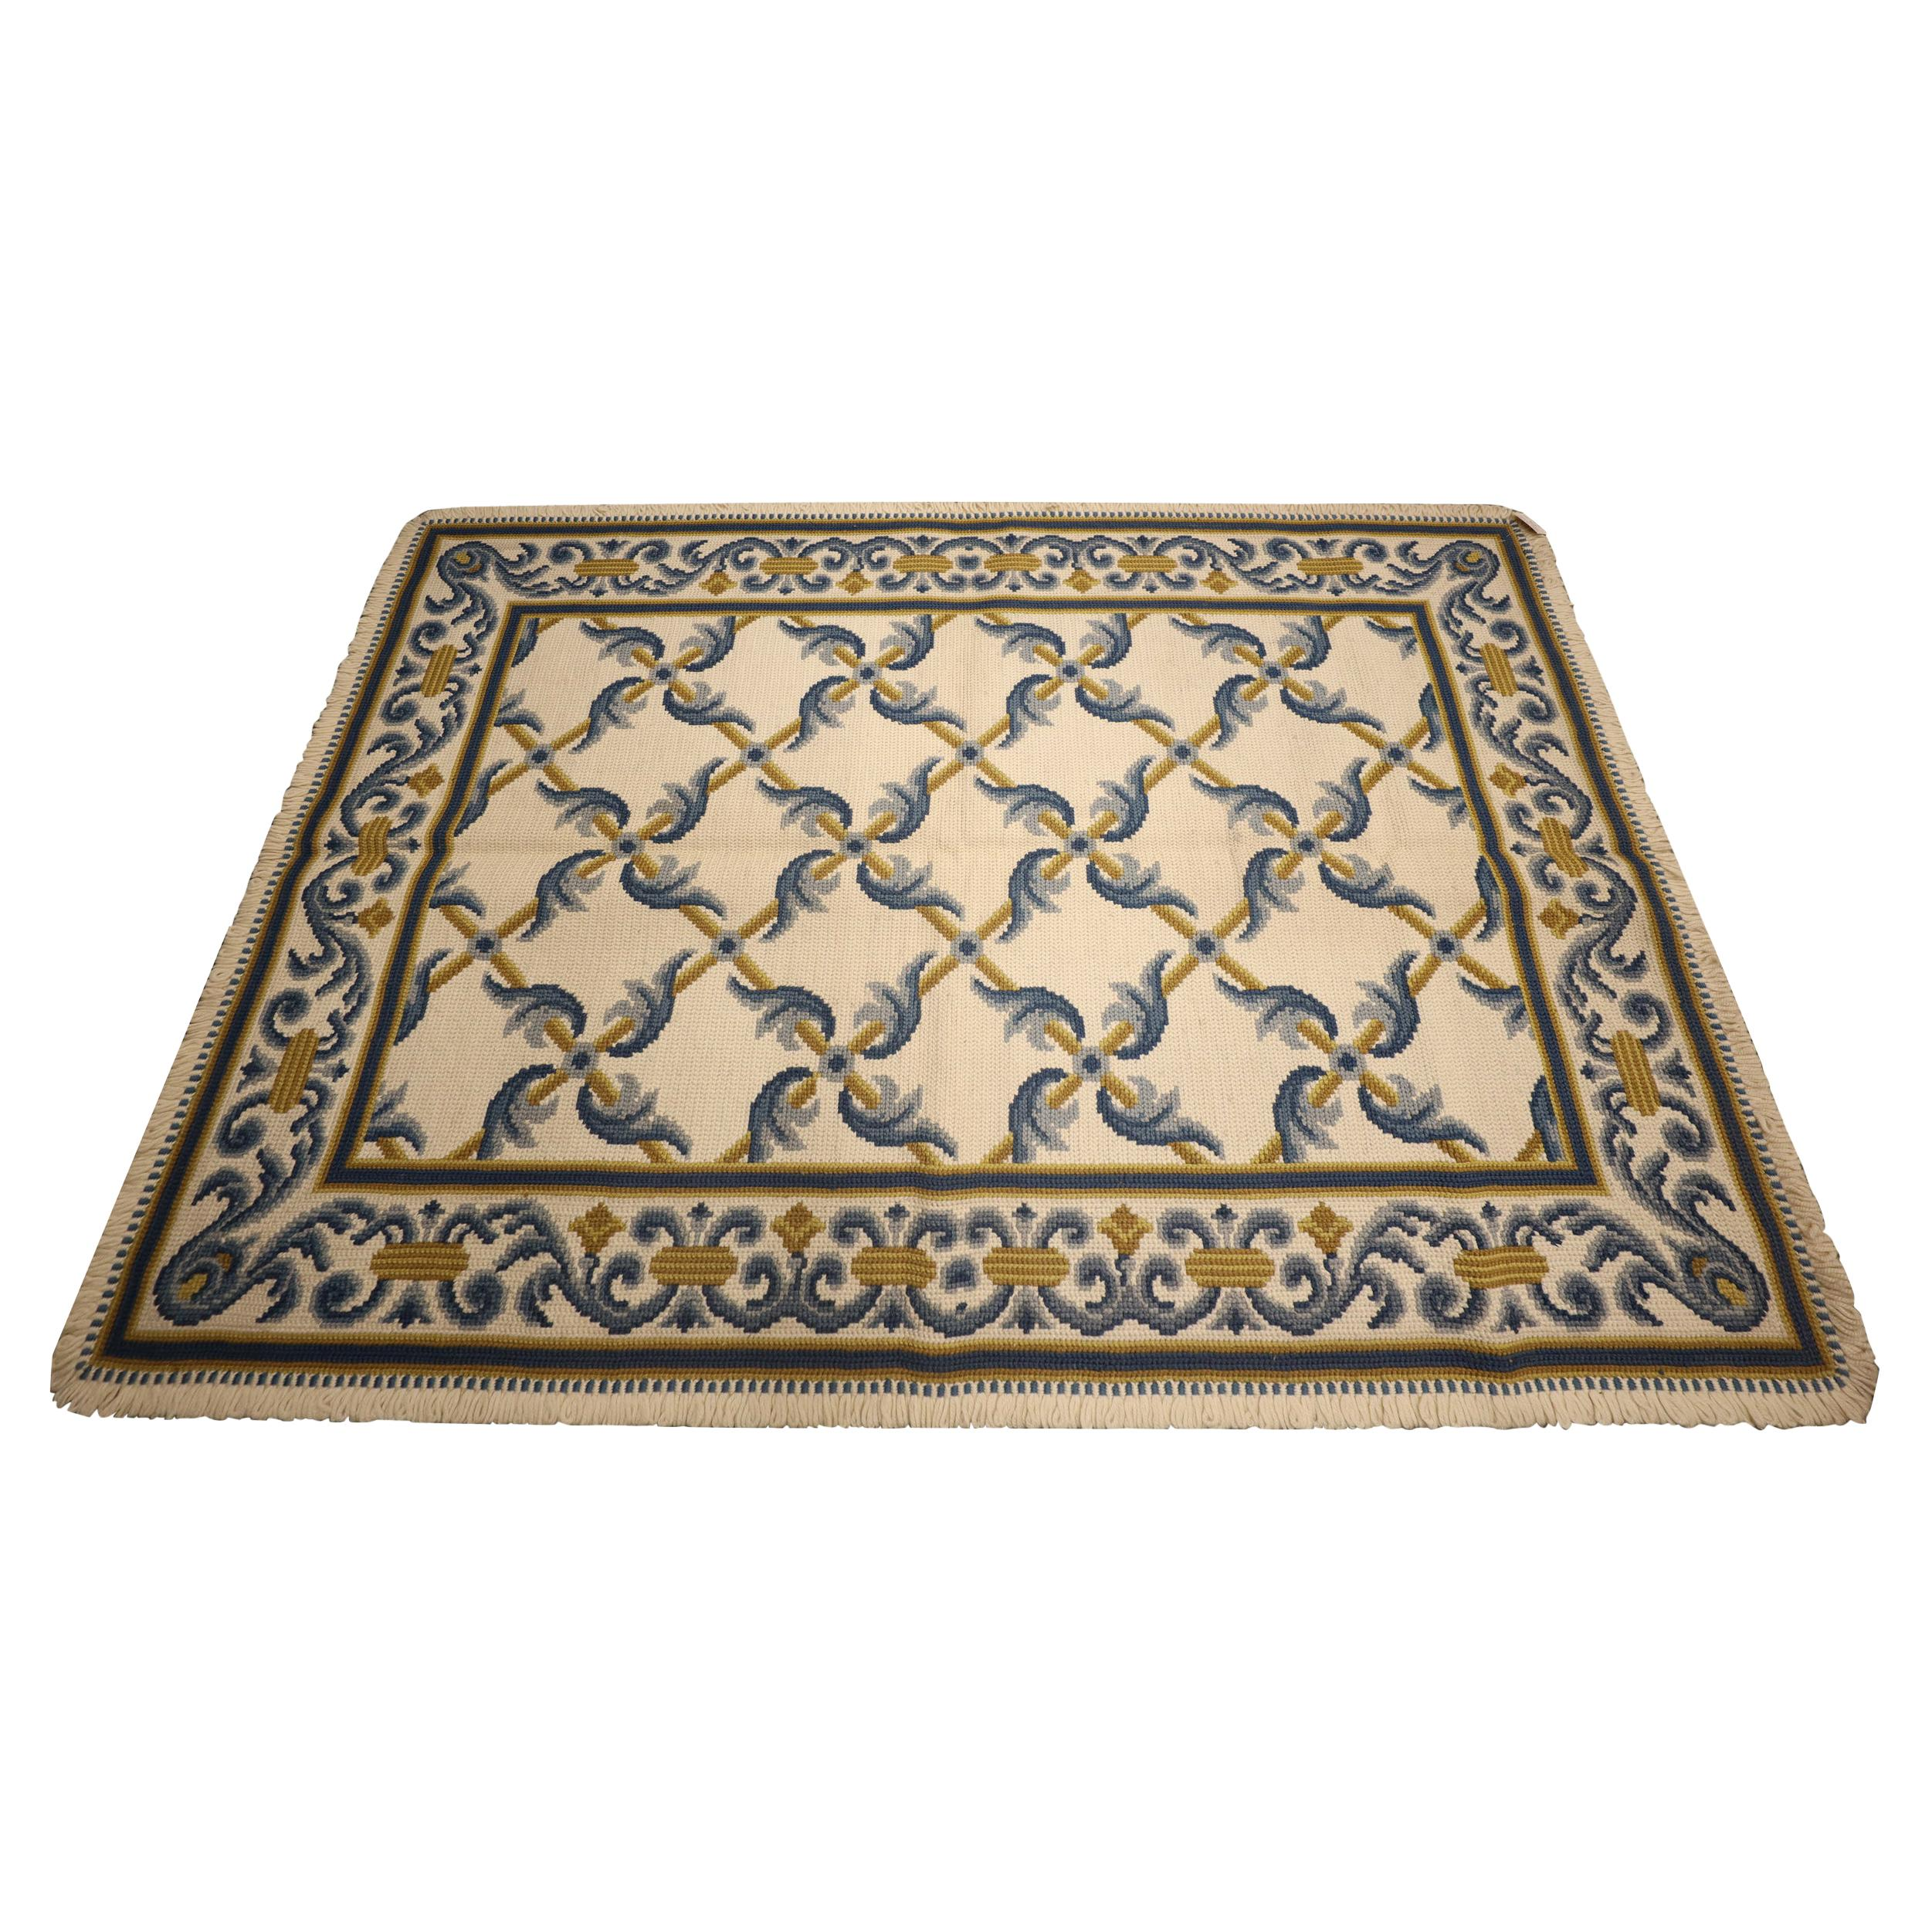 Hand Woven Wool Needlepoint Rug Traditional Blue Cream Carpet Rugs